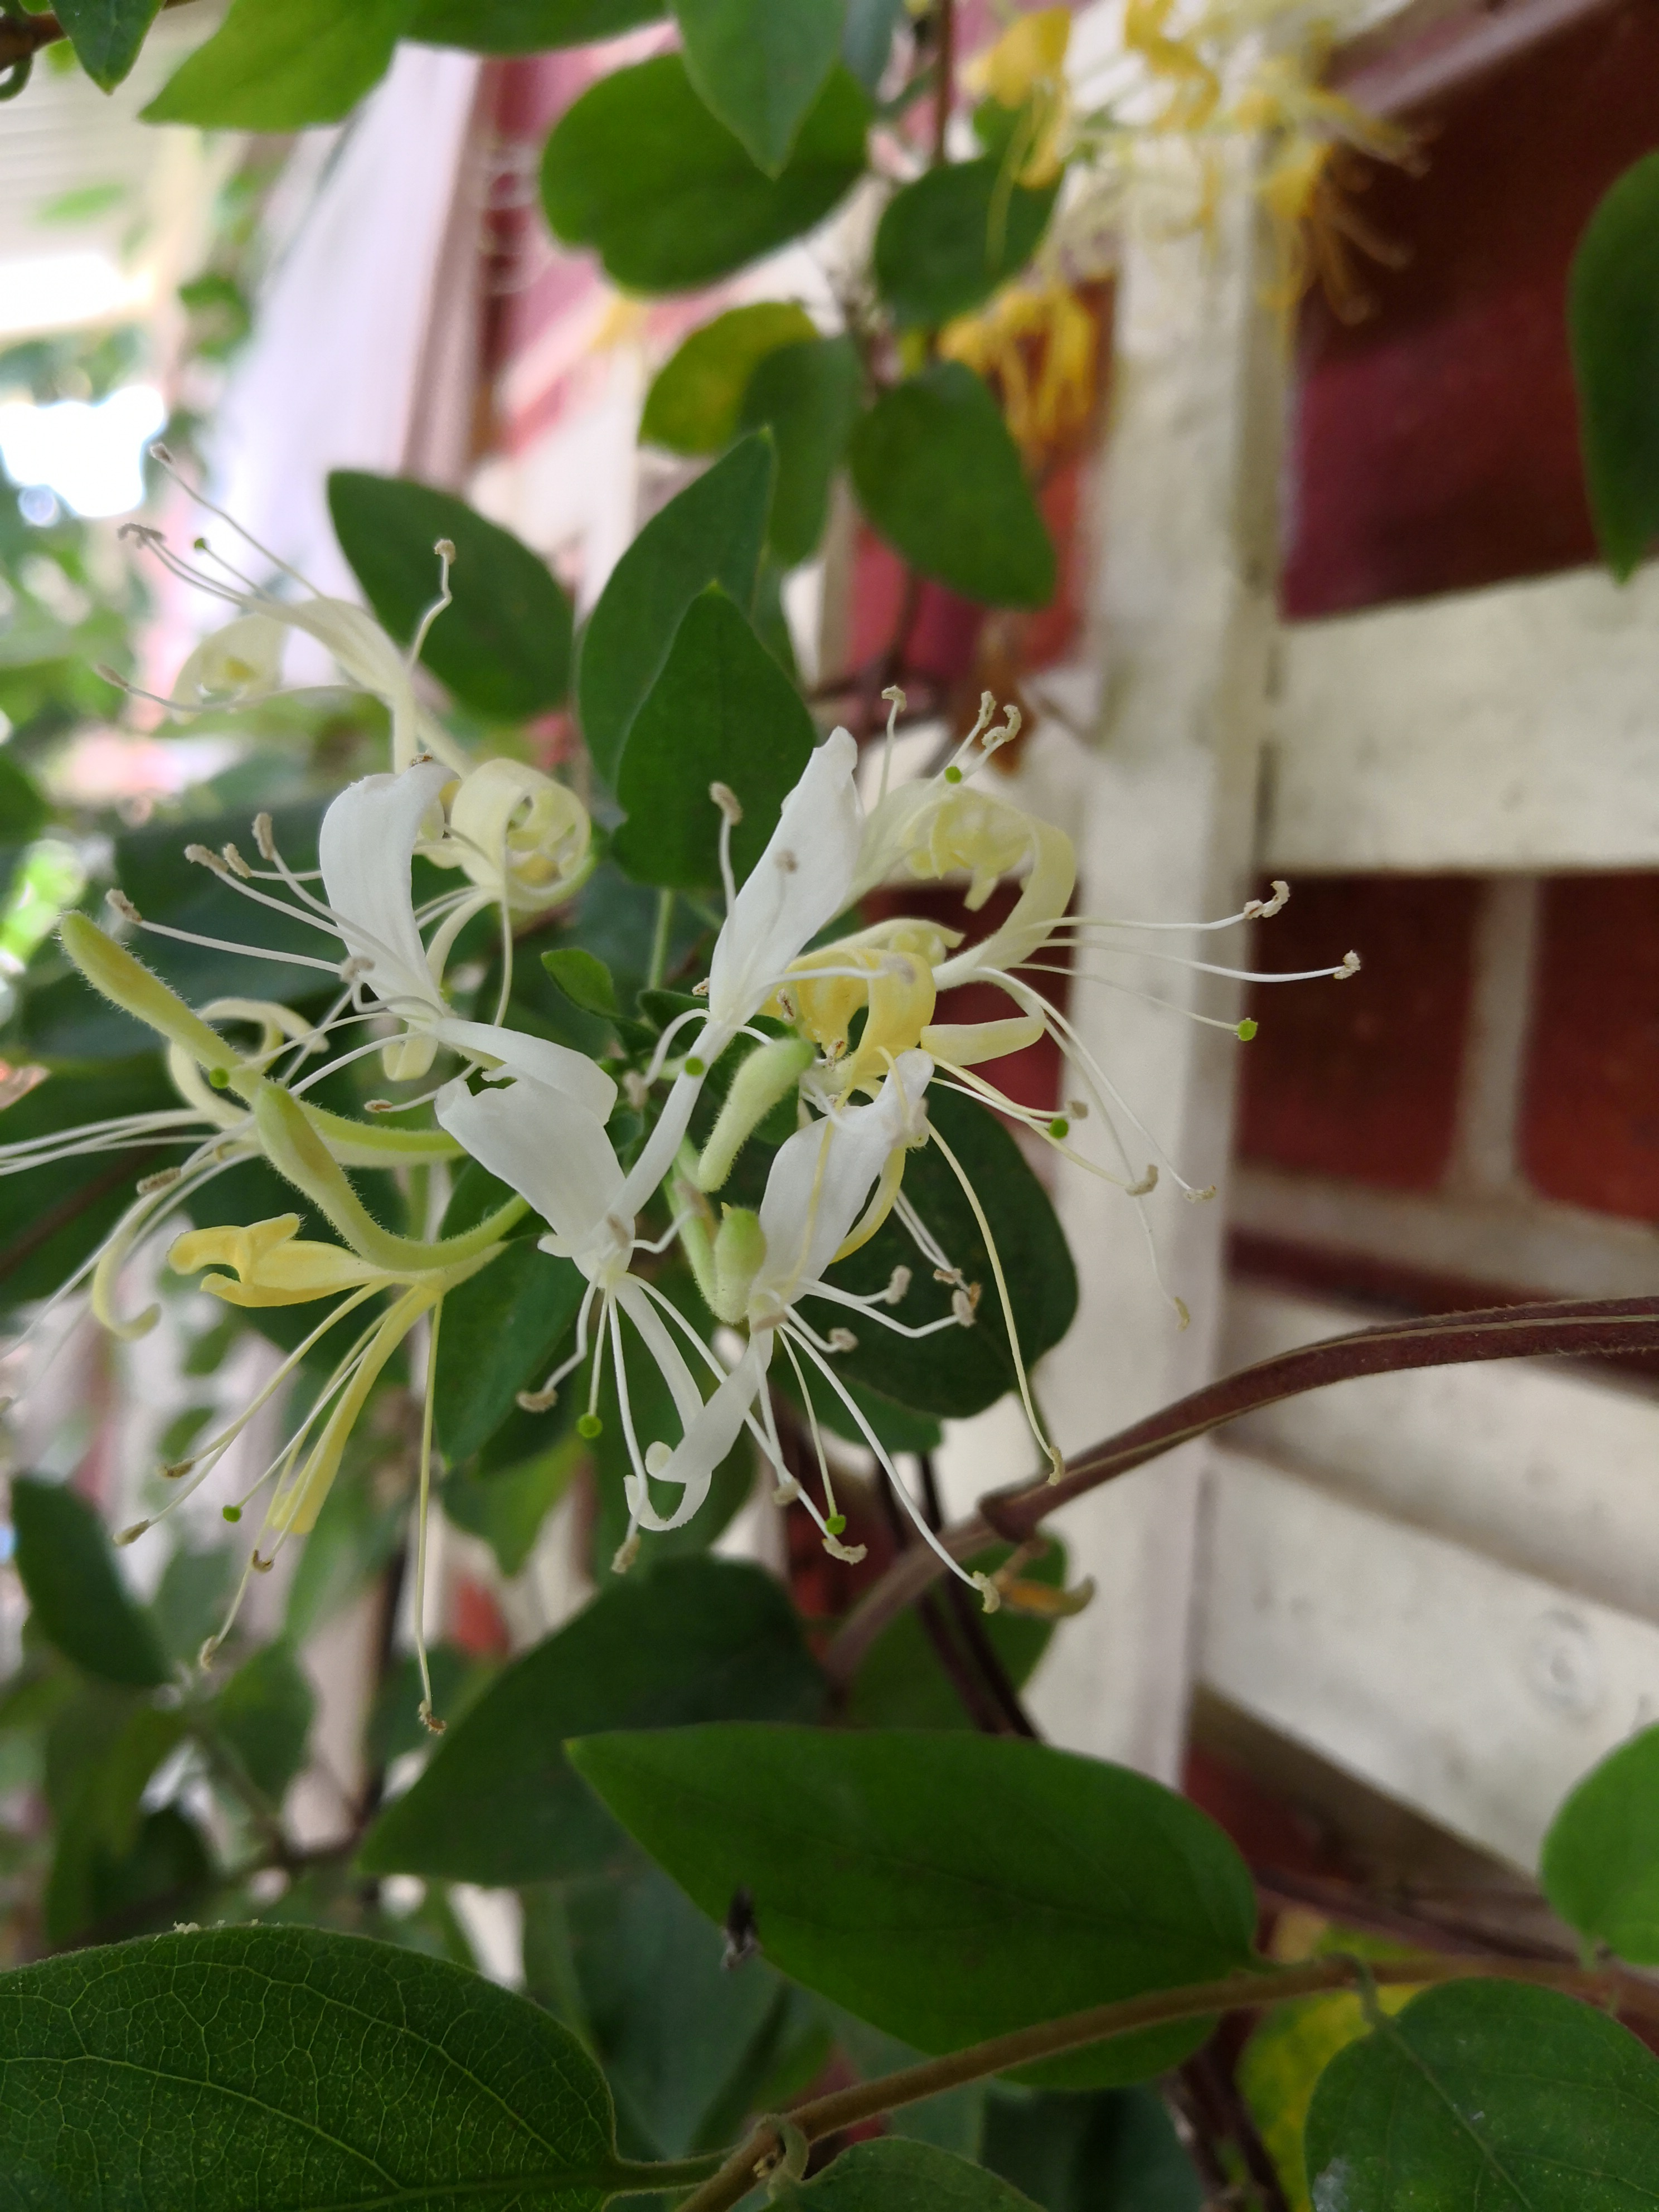 Lonicera species